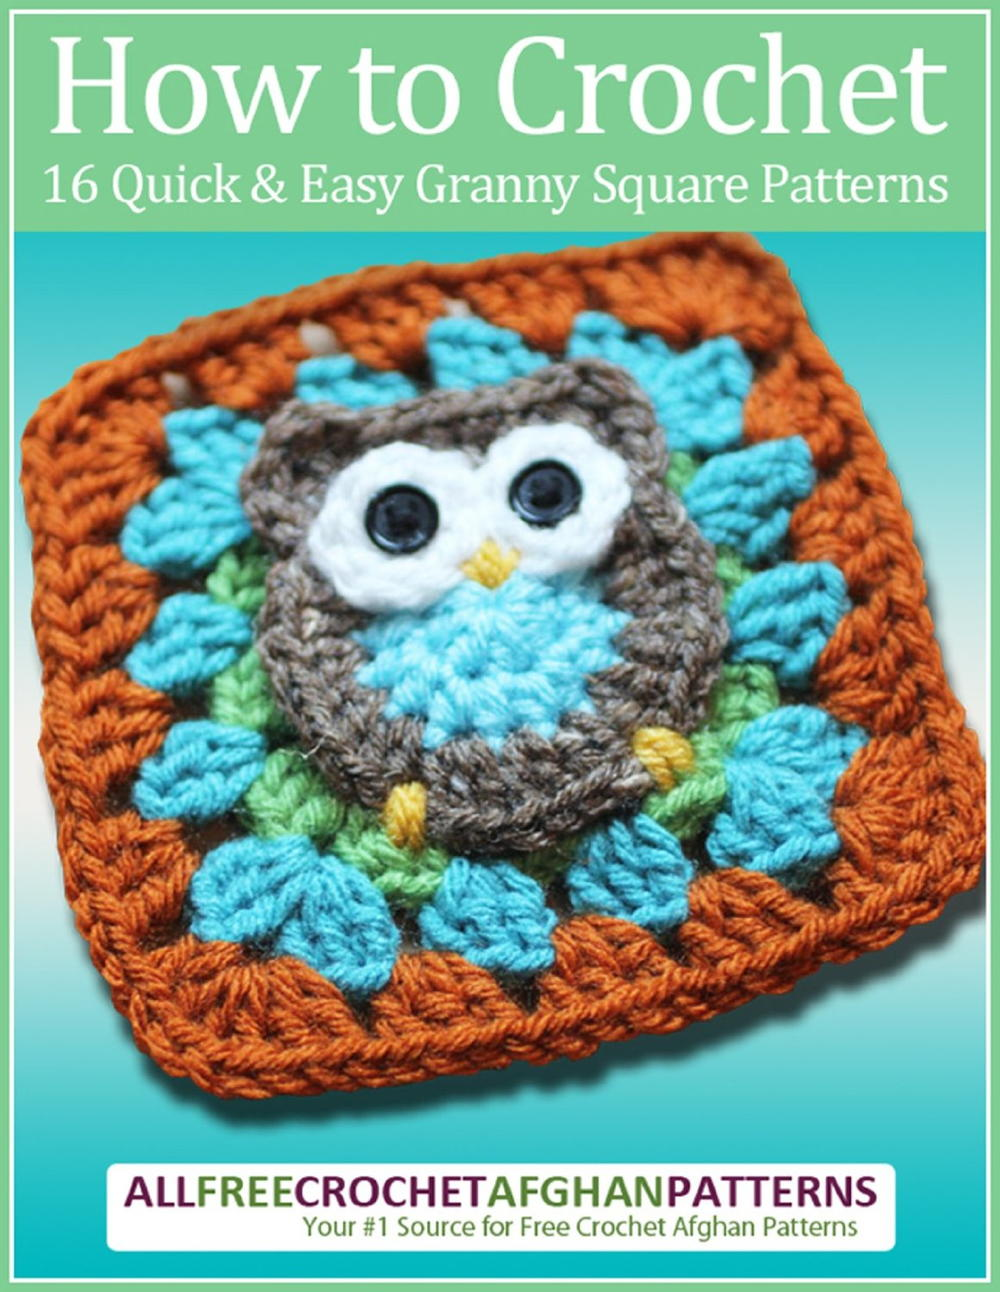 How to Crochet: 16 Quick and Easy Granny Square Patterns free eBook ...